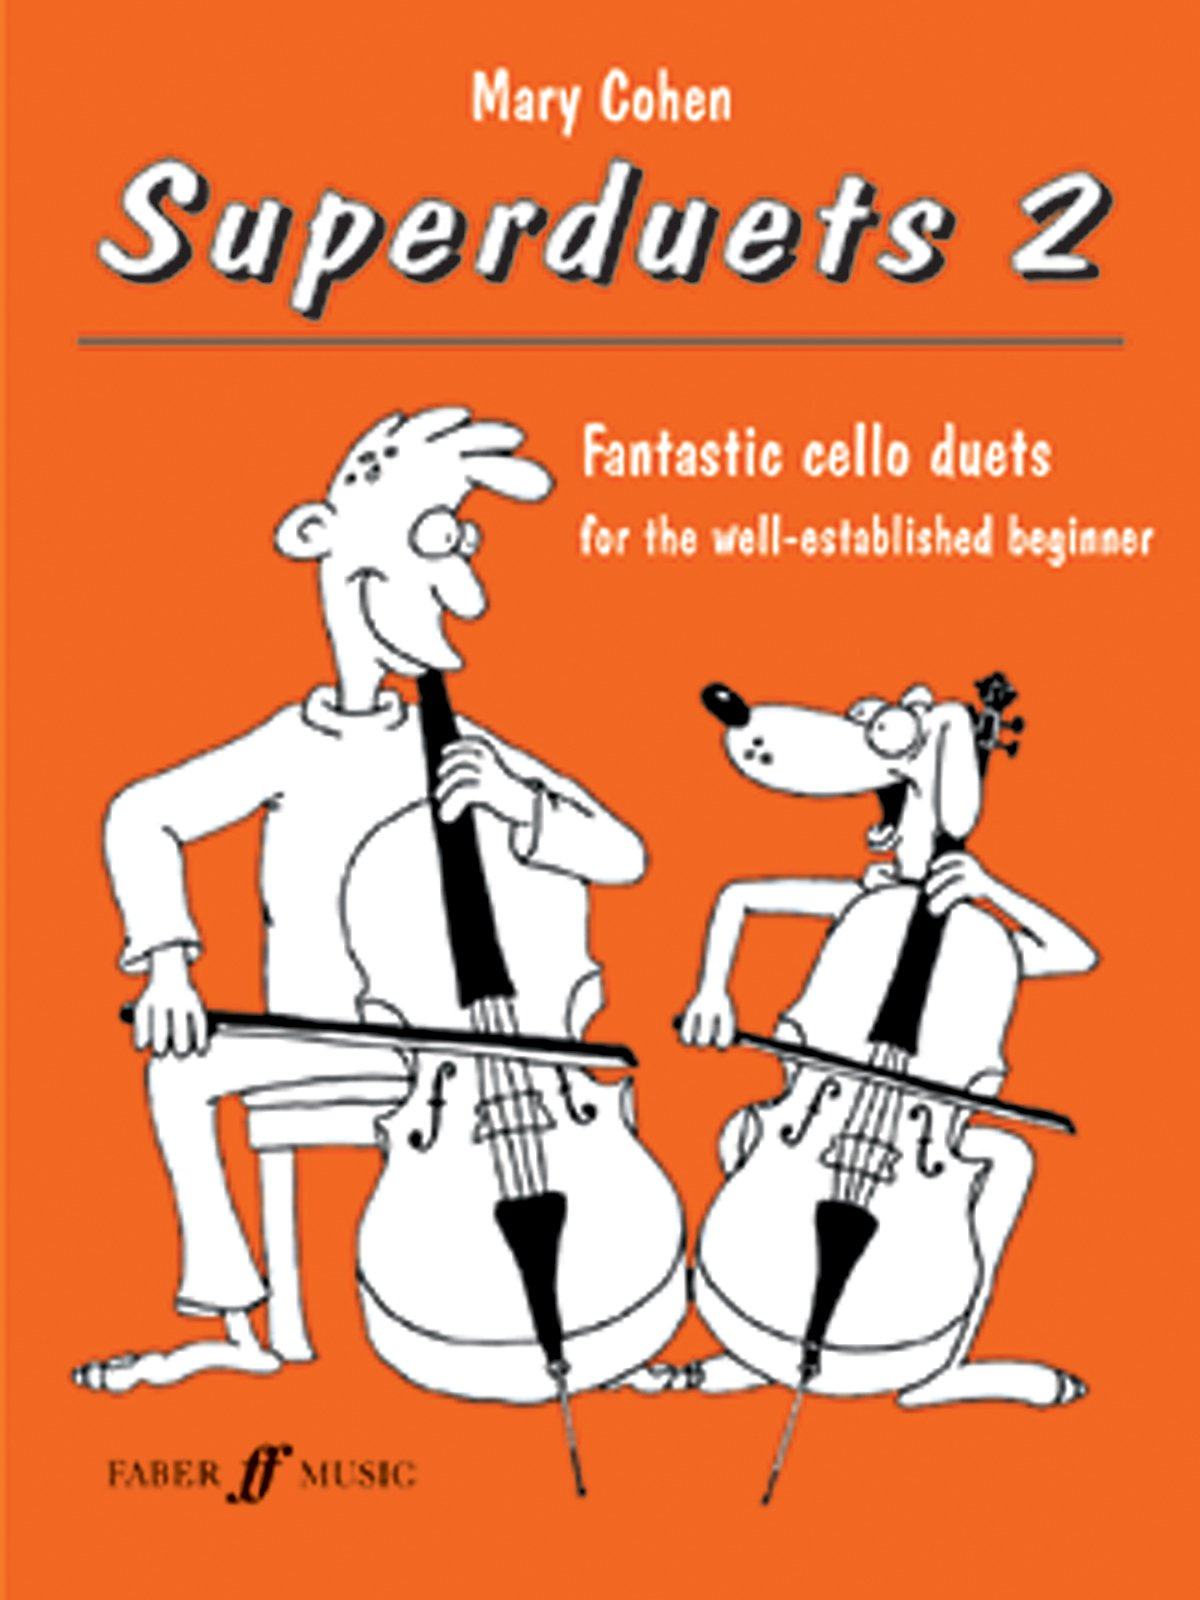 Superduets for Cello, Bk 2: Fantastic Cello Duets for the Well-Established Beginner (Faber Edition) ebook